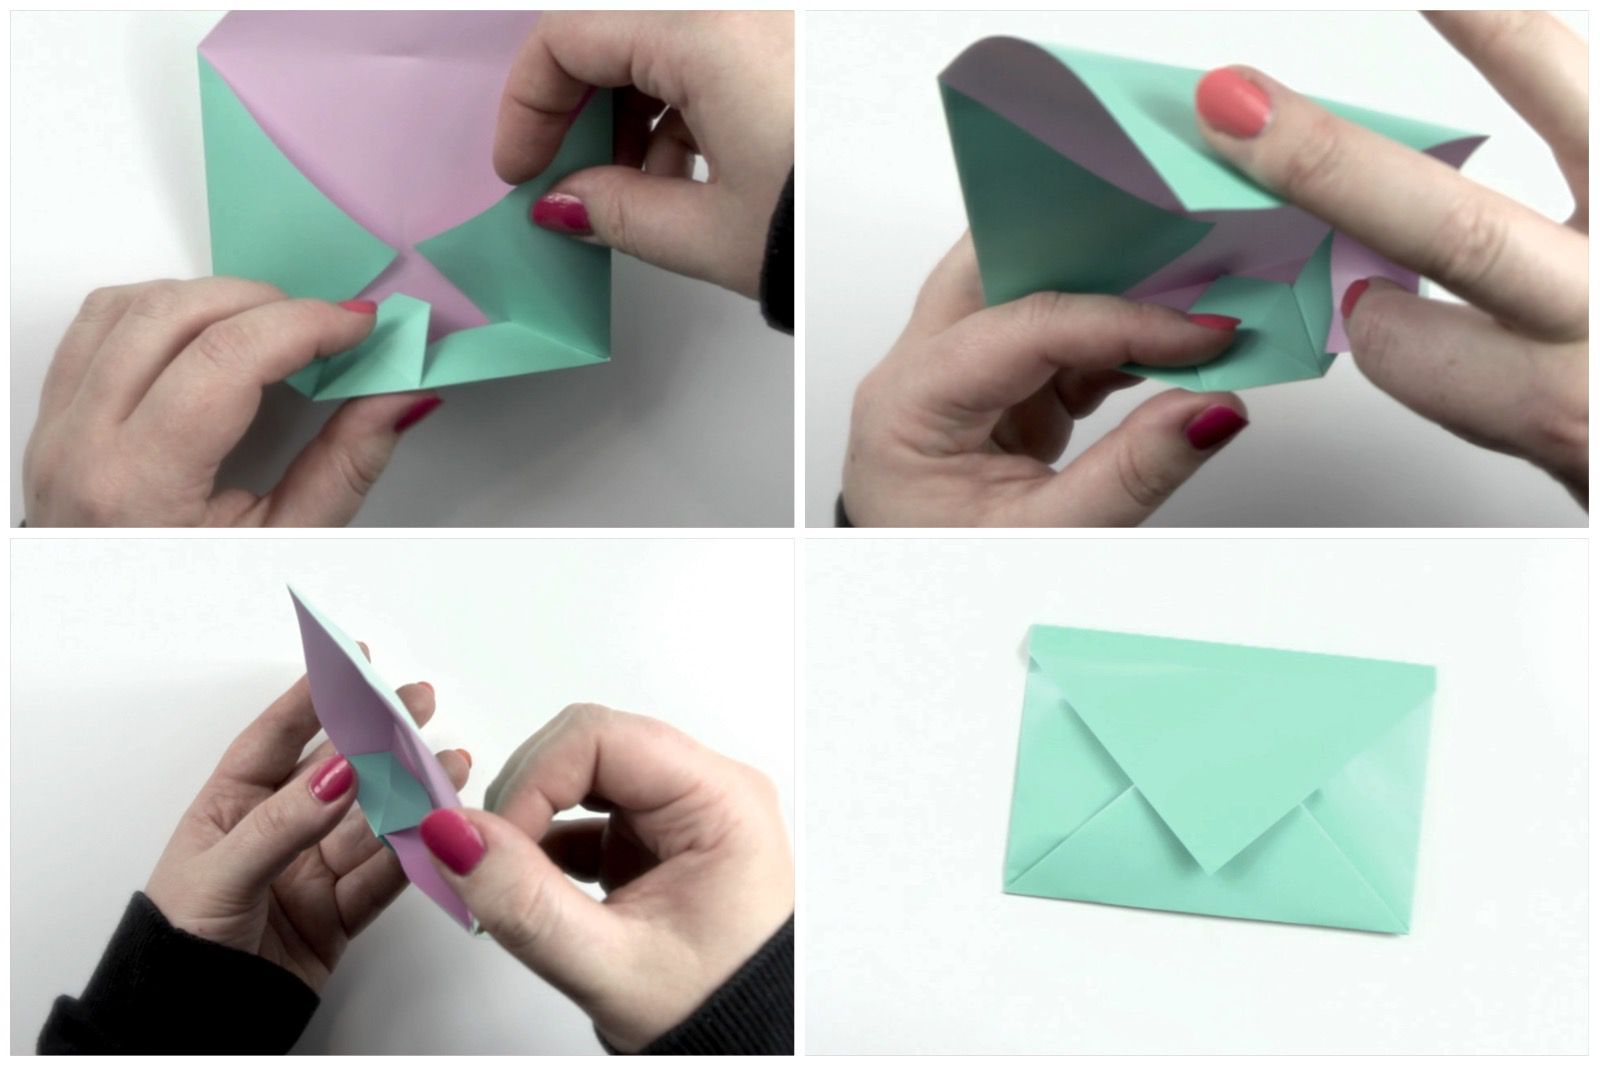 Final folds of an origami envelope